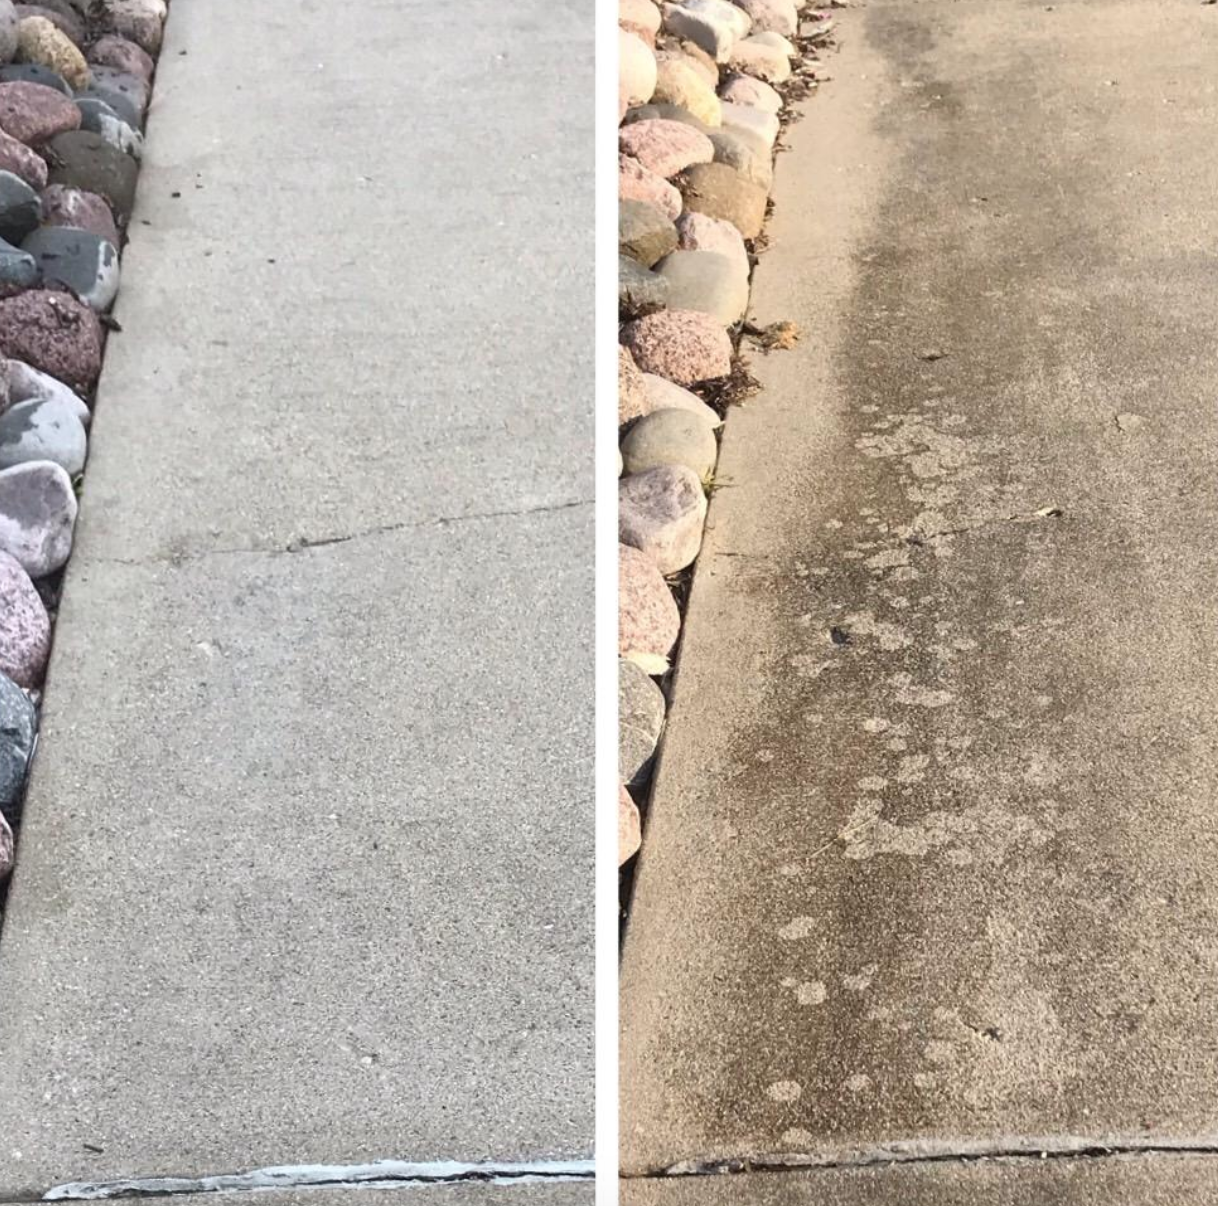 Reviewer's before-and-after image after using the degreaser to noticeably clean their driveway concrete